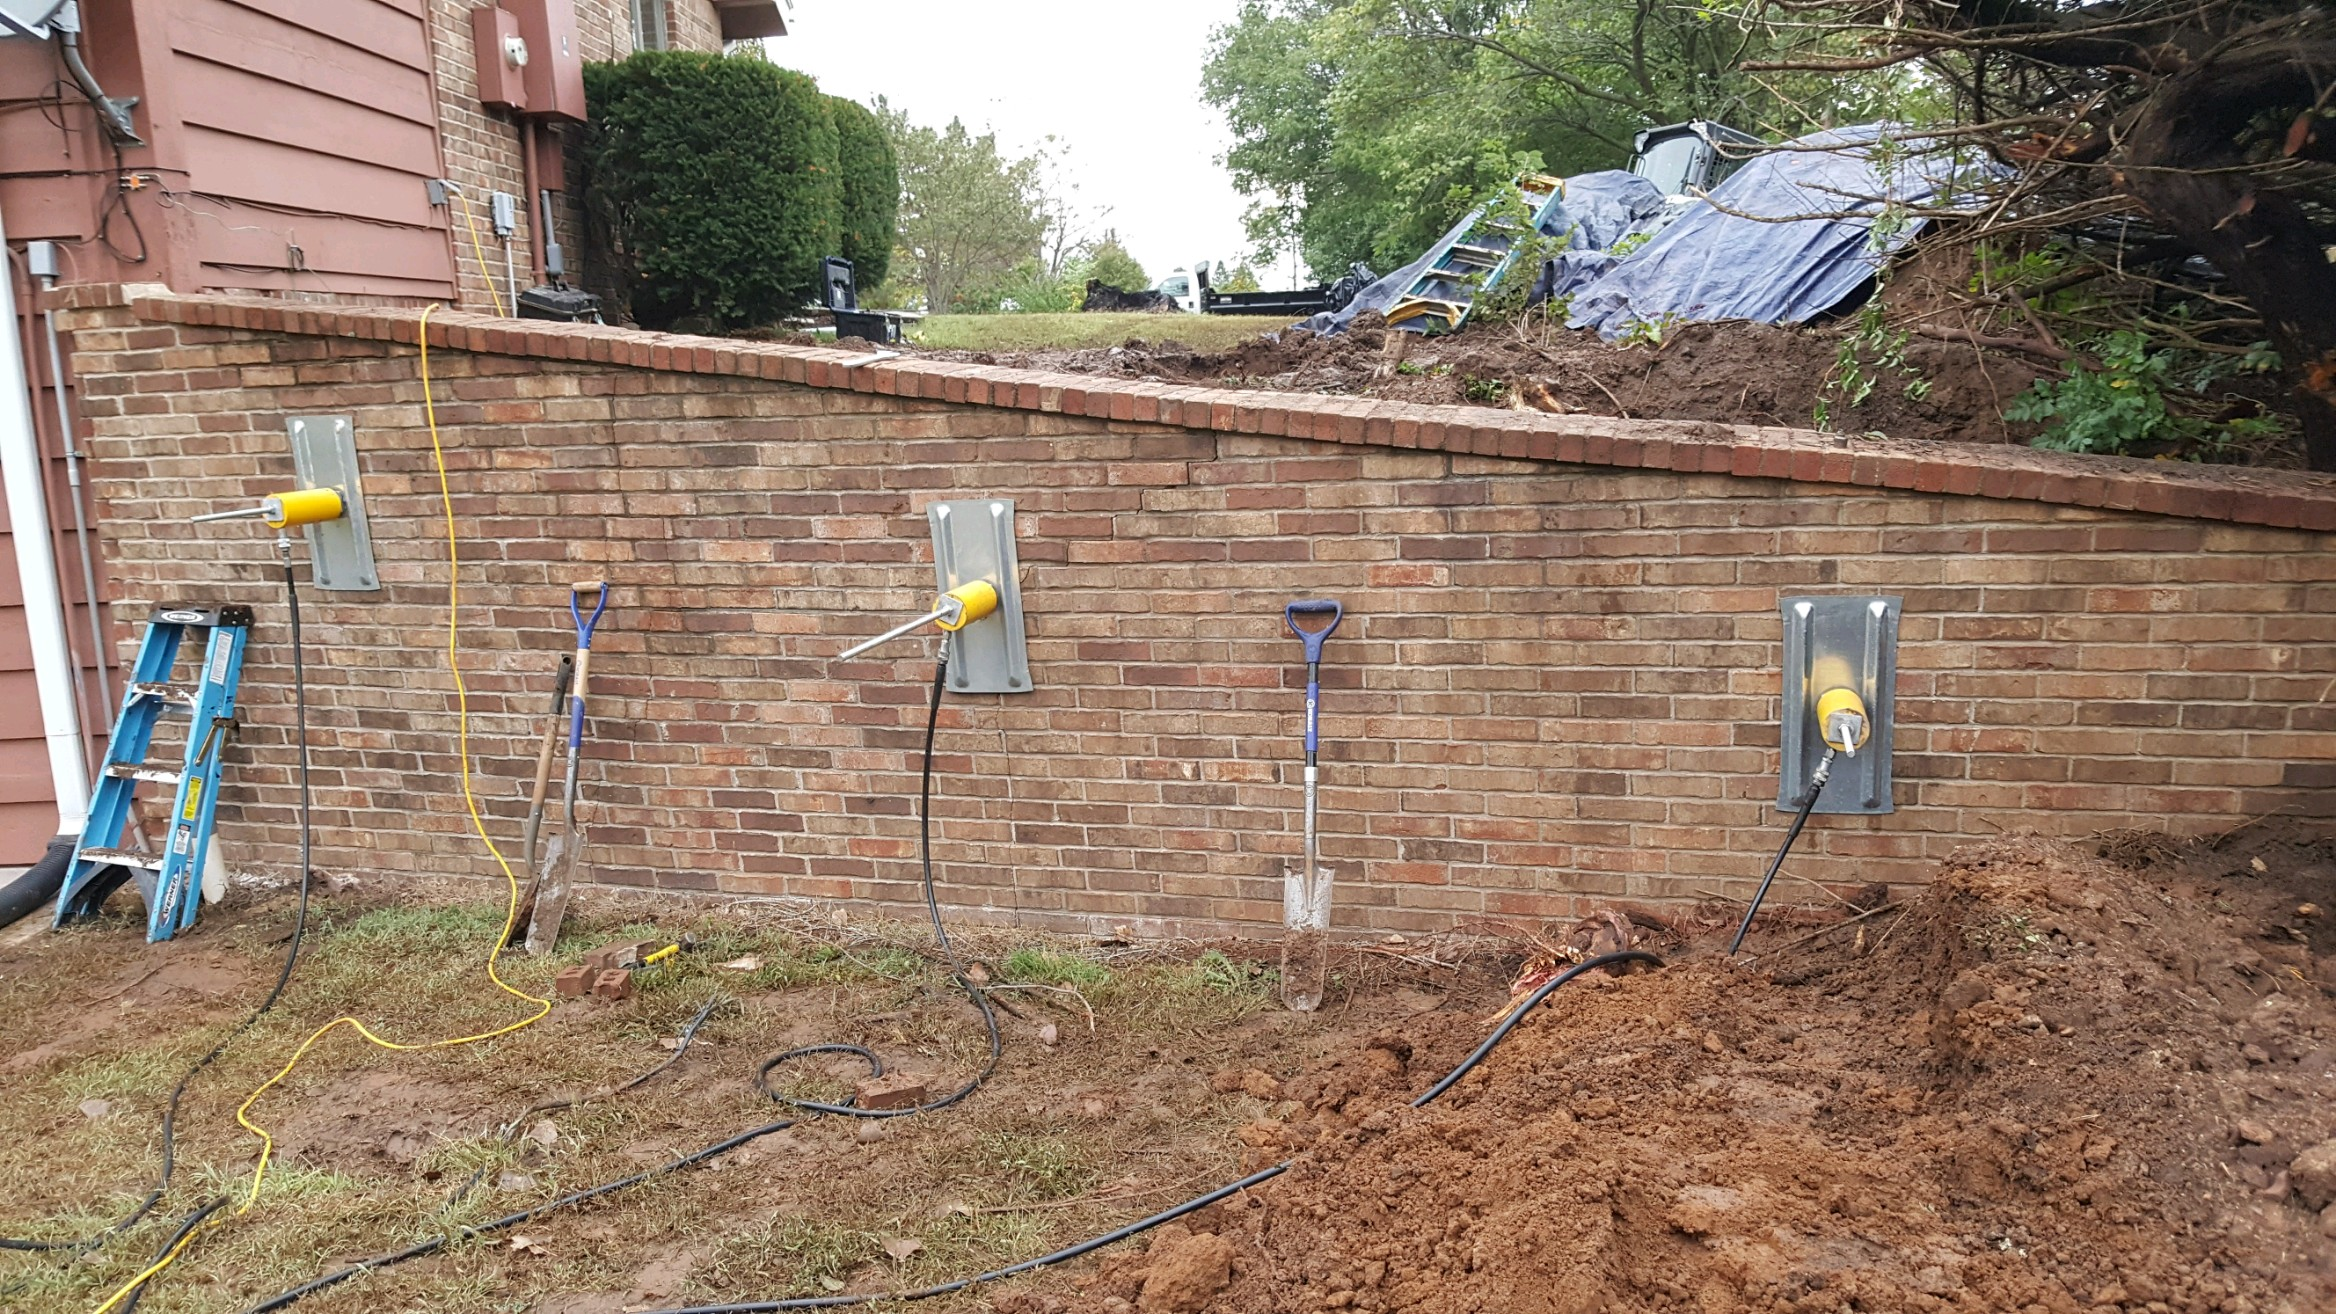 Foundation repairs in wichita using helical pier systems hunter wall anchor 2 solutioingenieria Choice Image